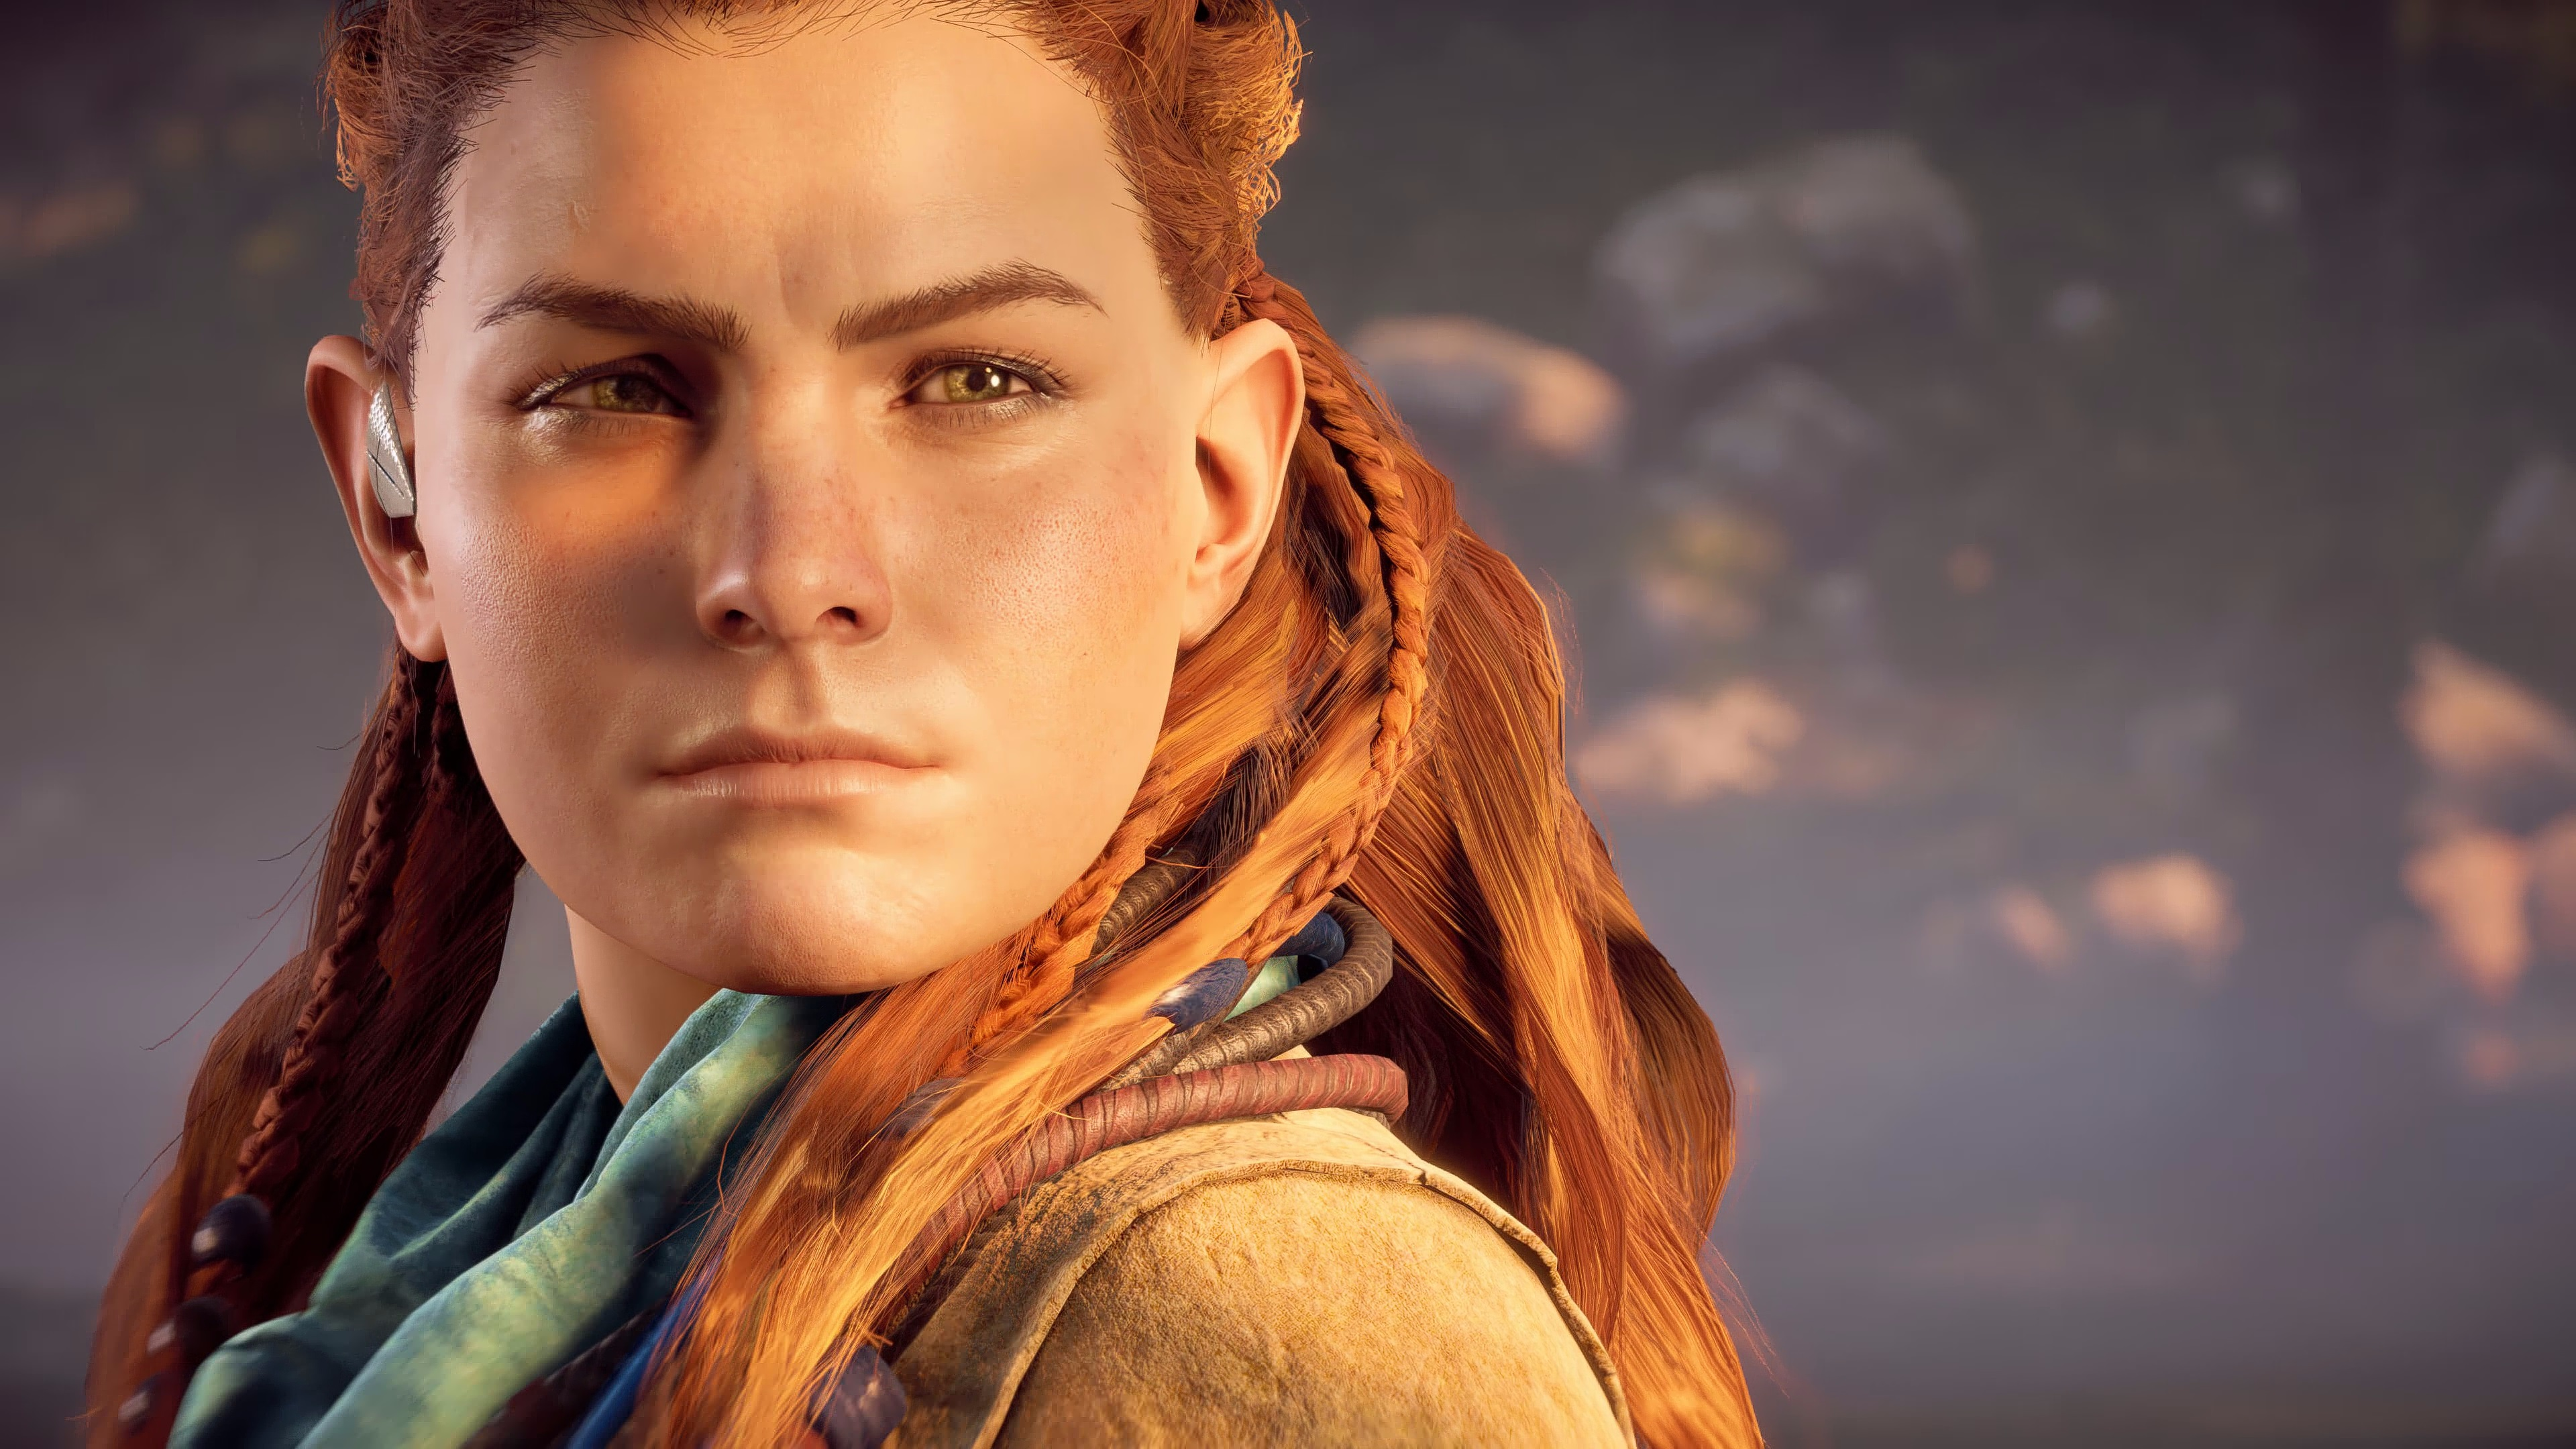 Horizon Zero Dawn Complete Edition Screenshot 2020.08.08 - 10.55.32.85.jpg - Horizon: Zero Dawn